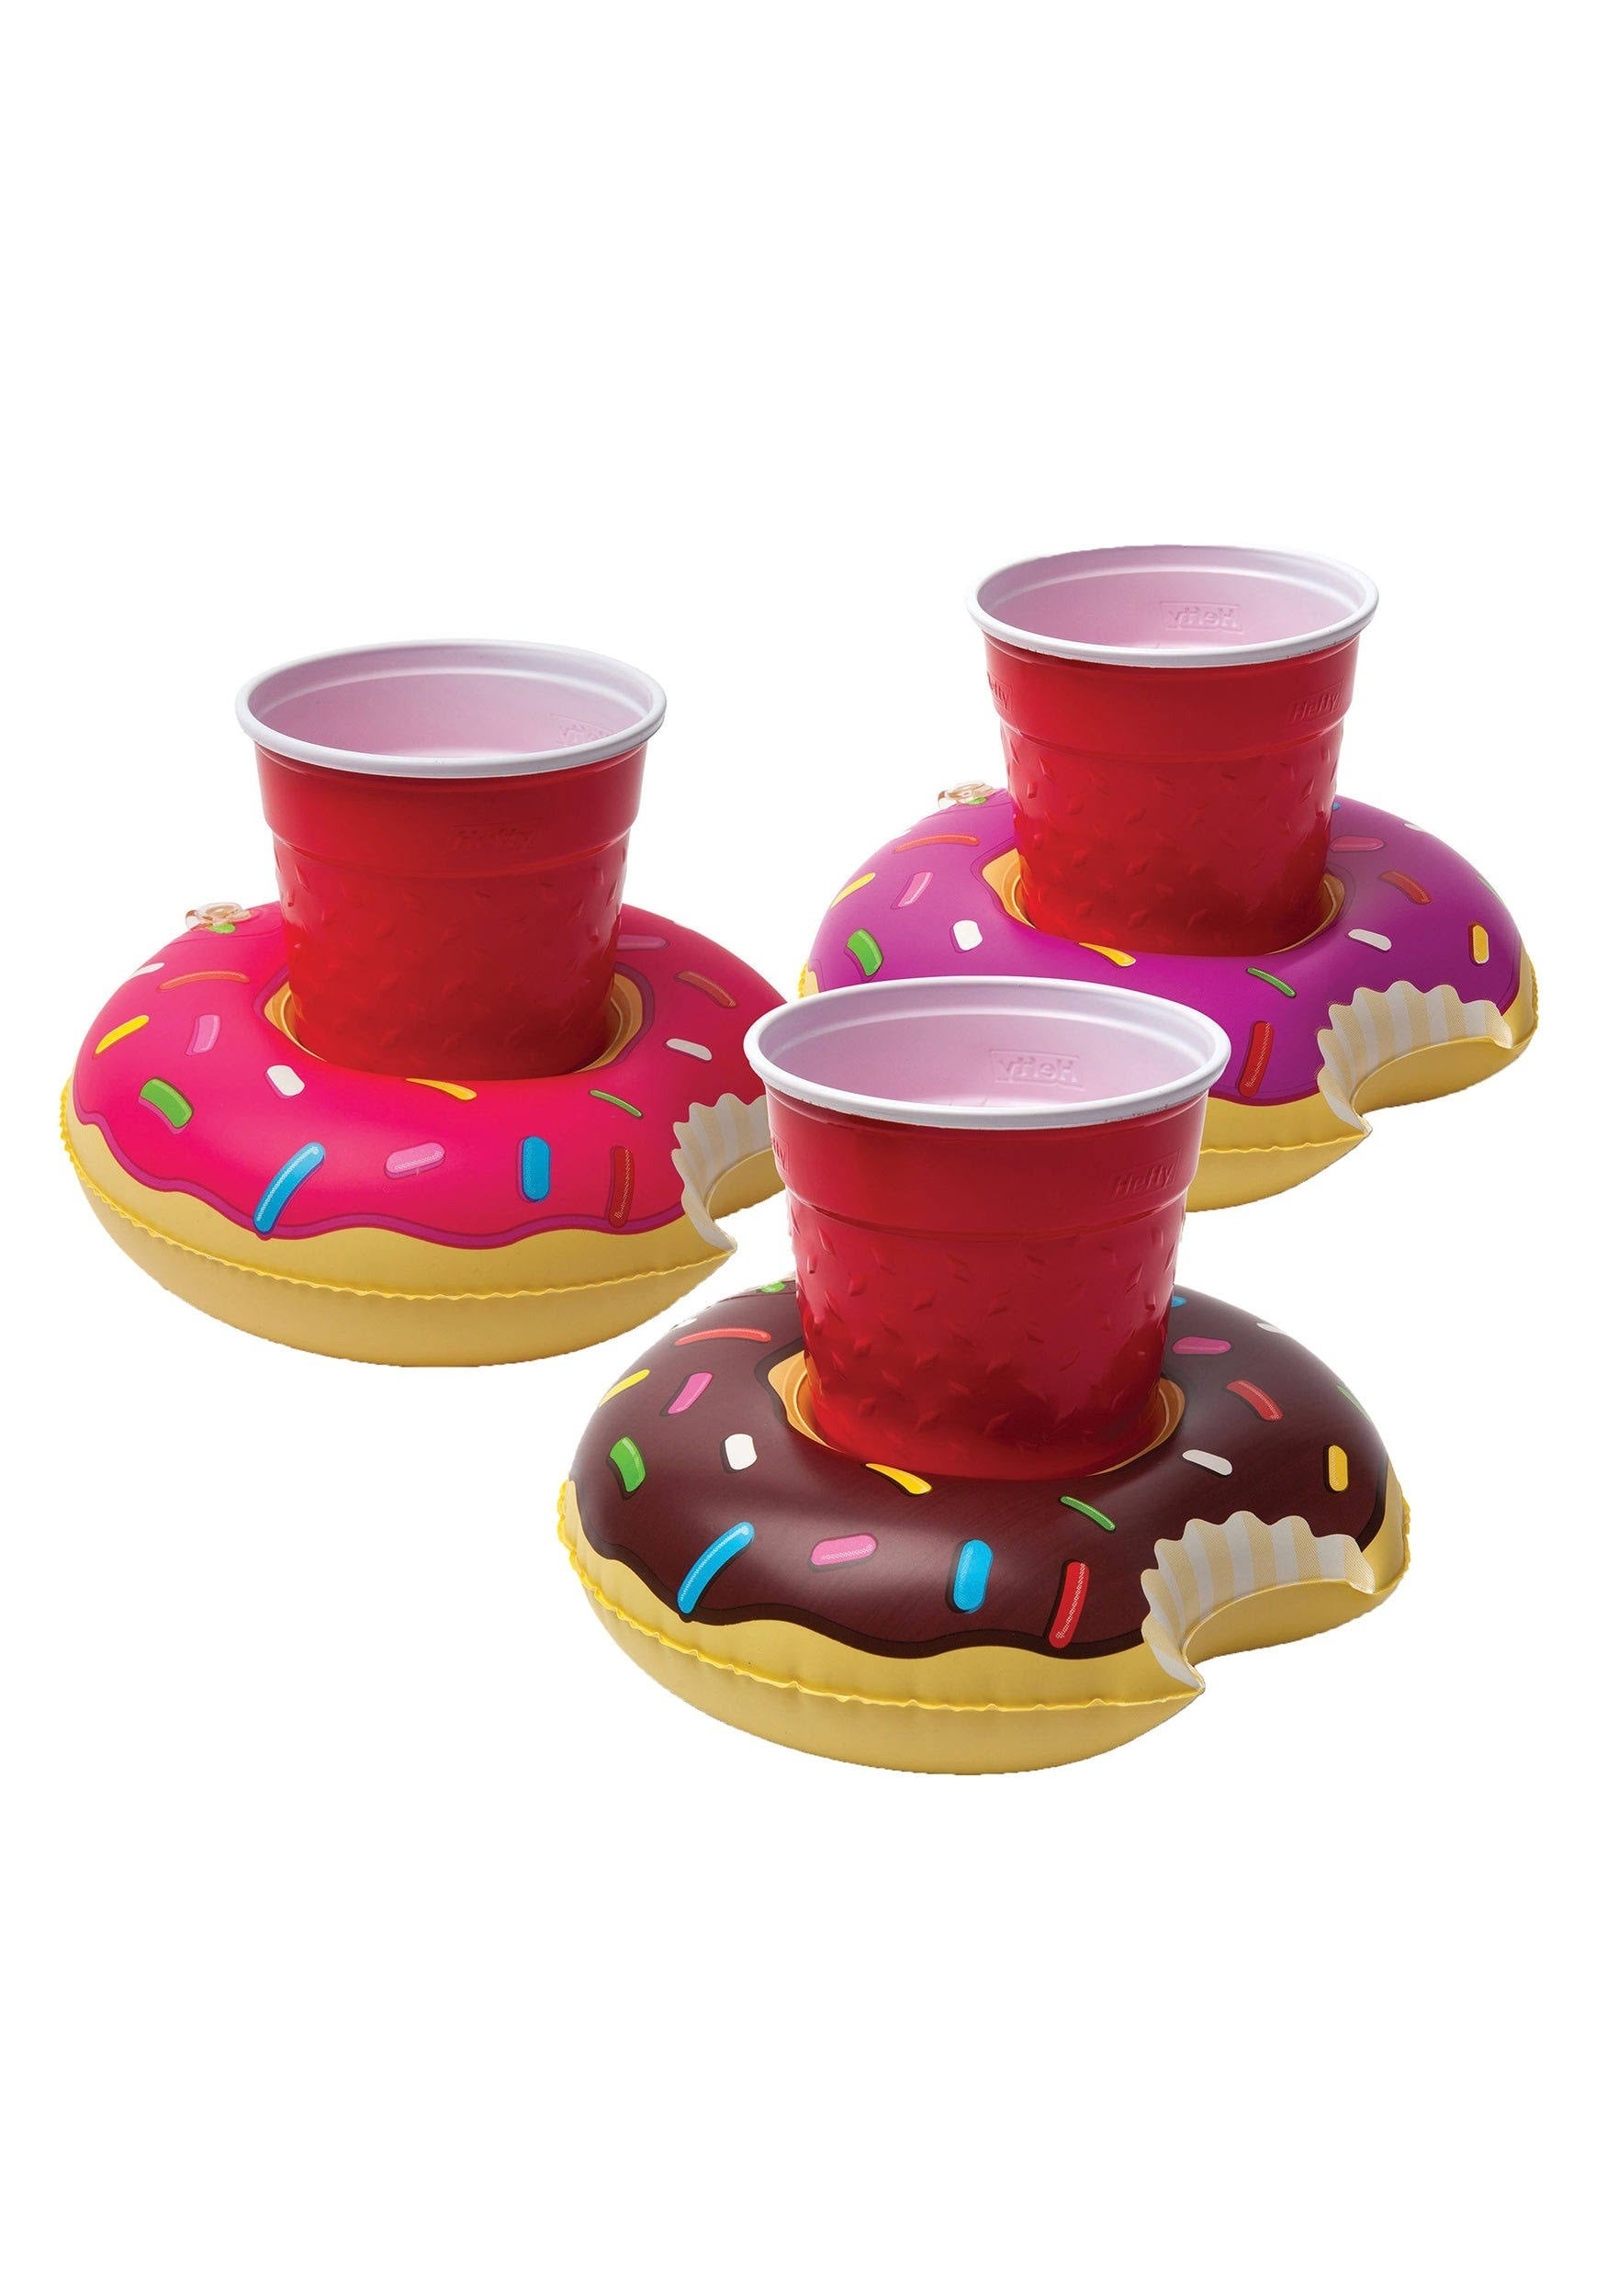 3pcs Inflatable Beverage Boats Donuts Drinks Cup Holder